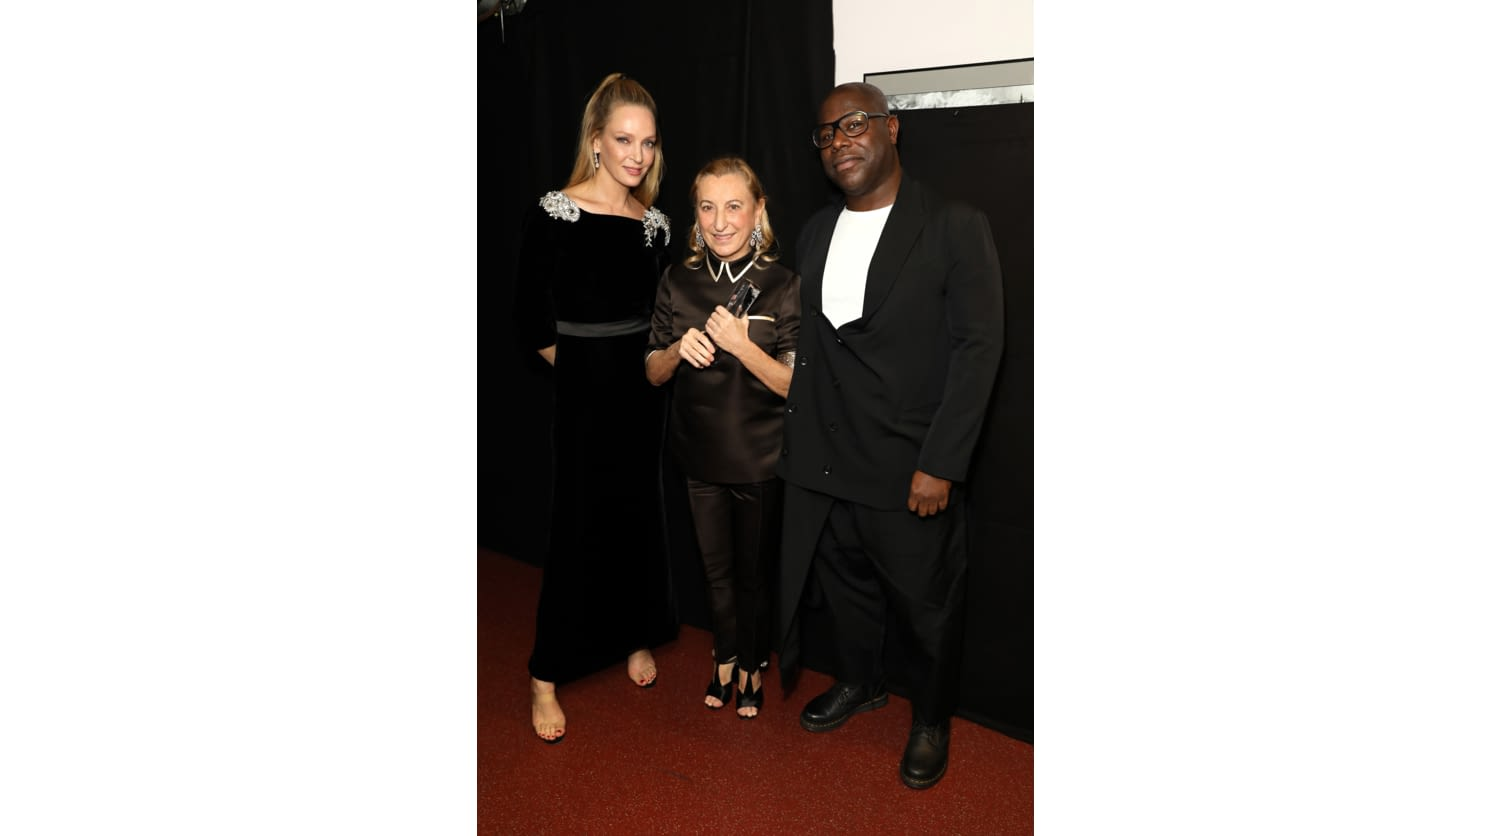 Uma Thurman_Miuccia Prada_Steve McQueen_Fashion Awards 2018.jpeg